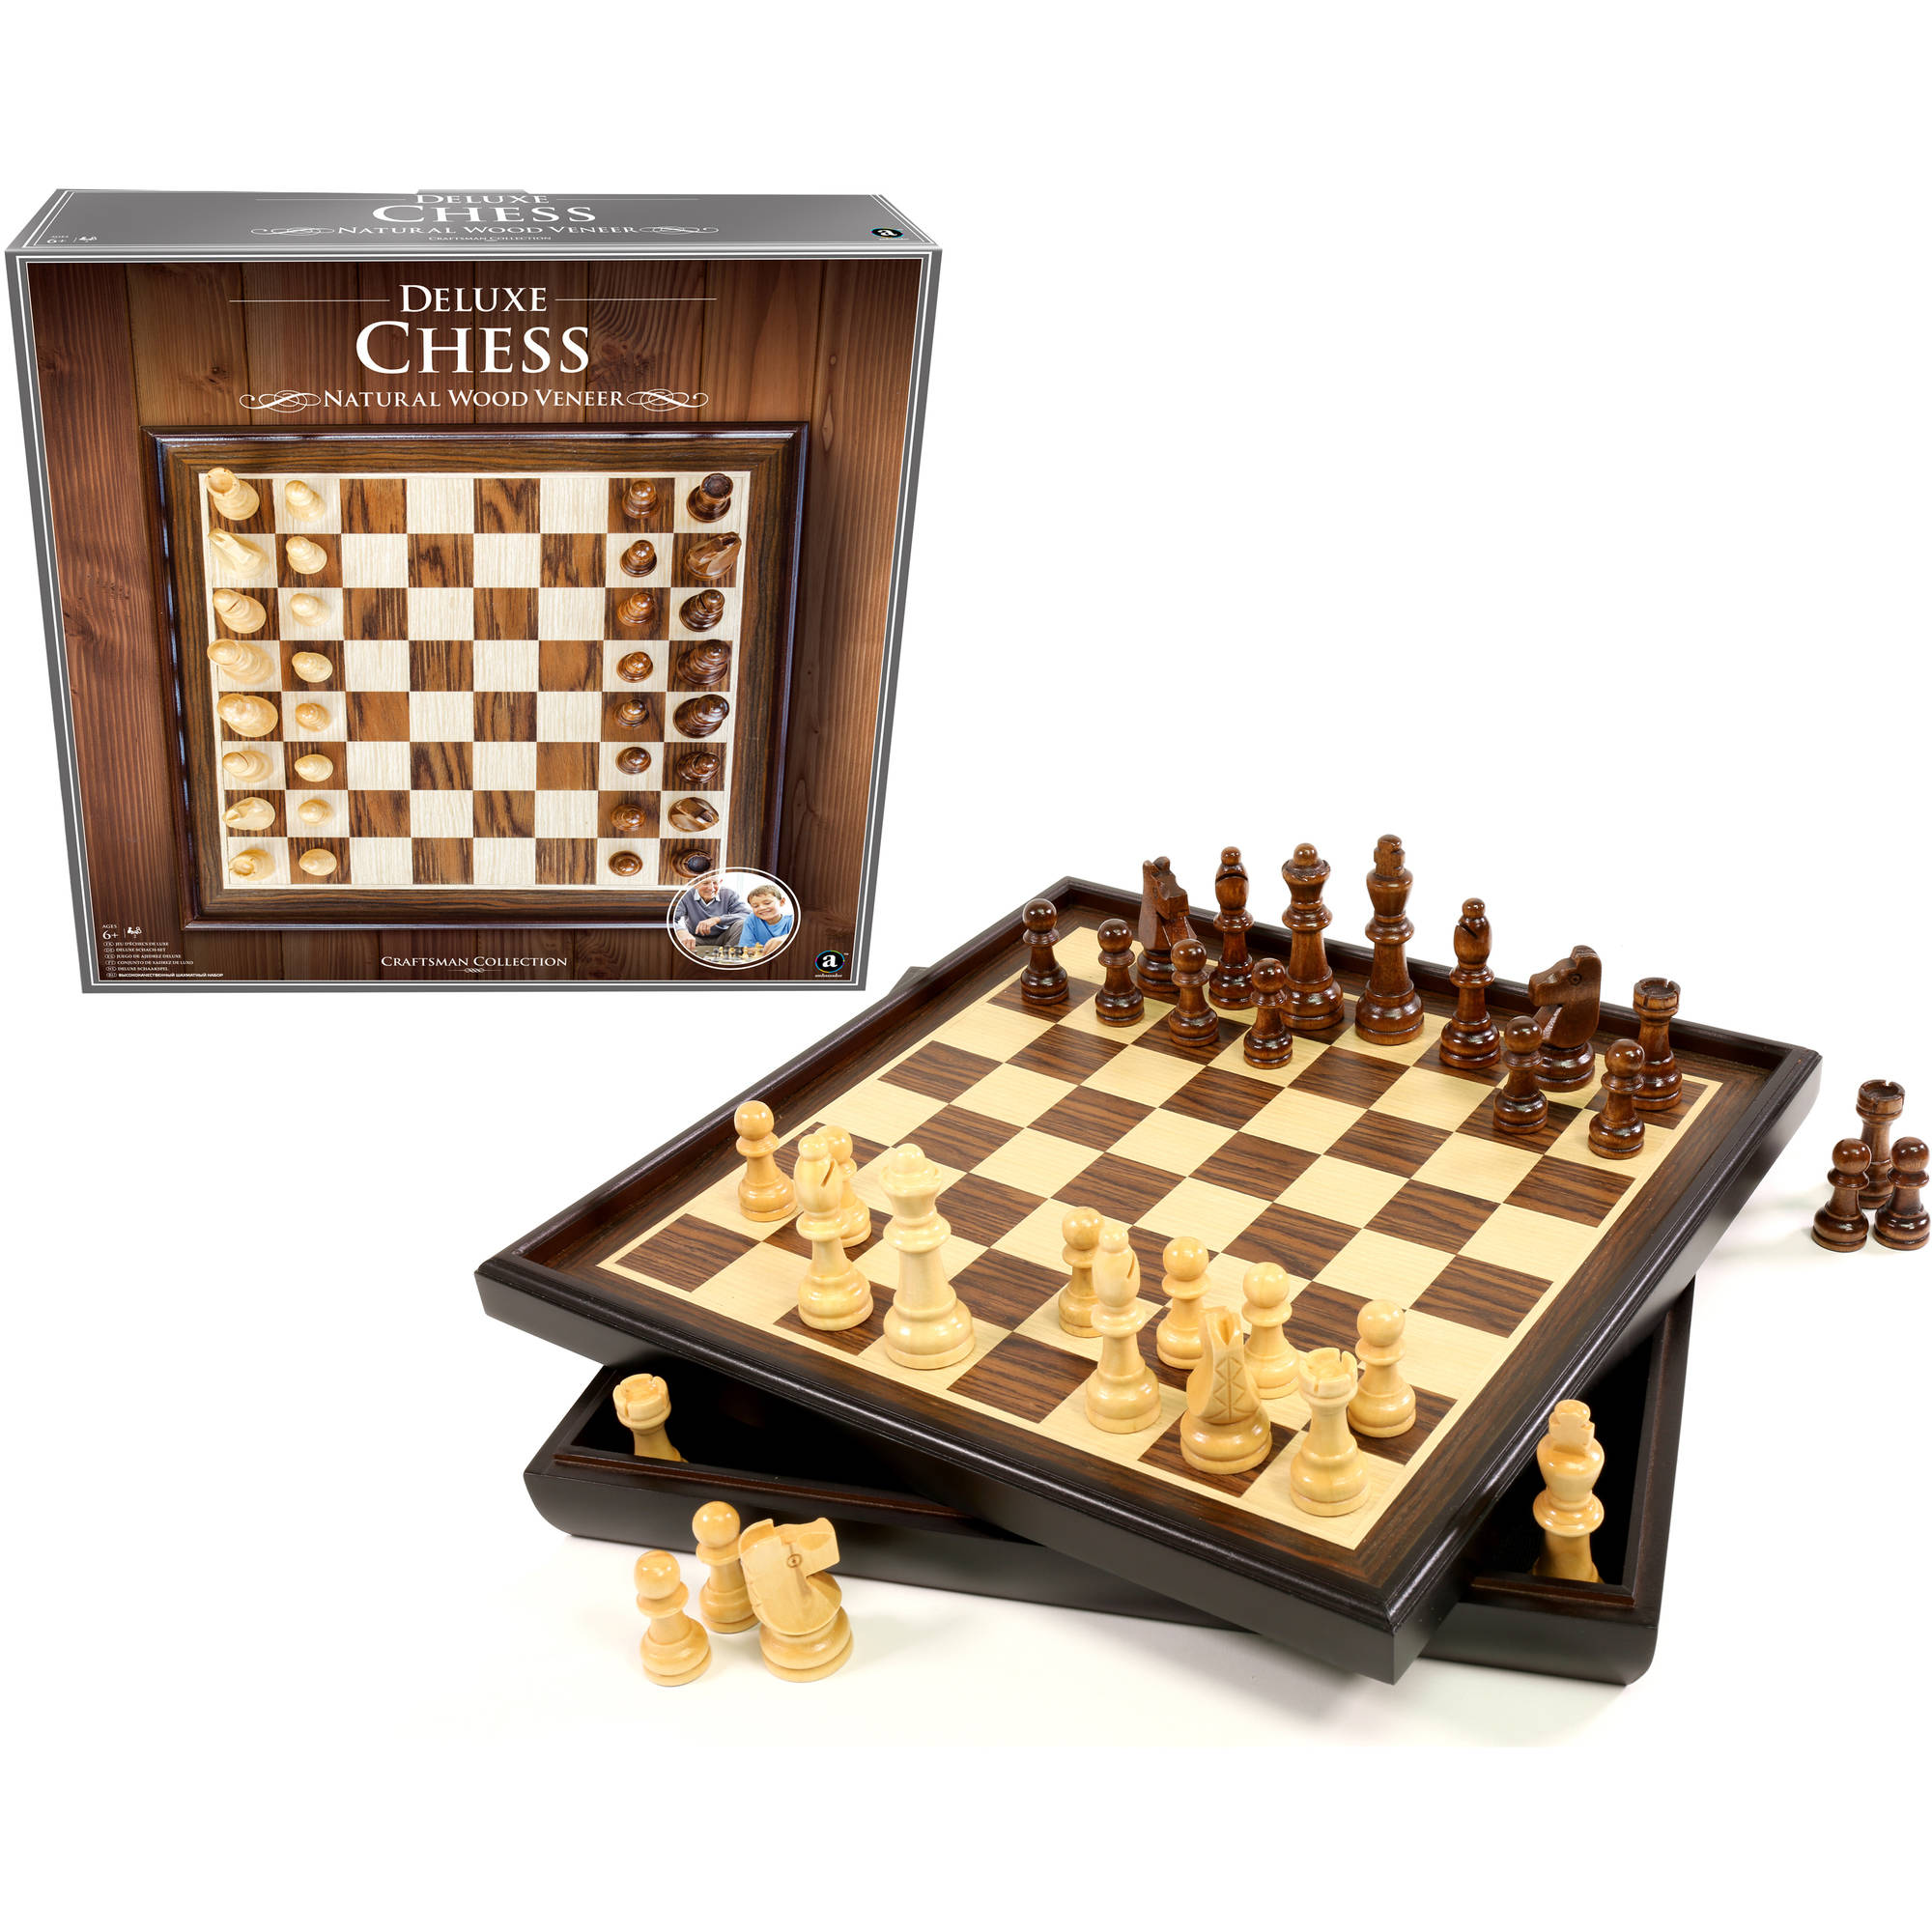 chess sets for sale craftsman wood veneer deluxe chess set 29974